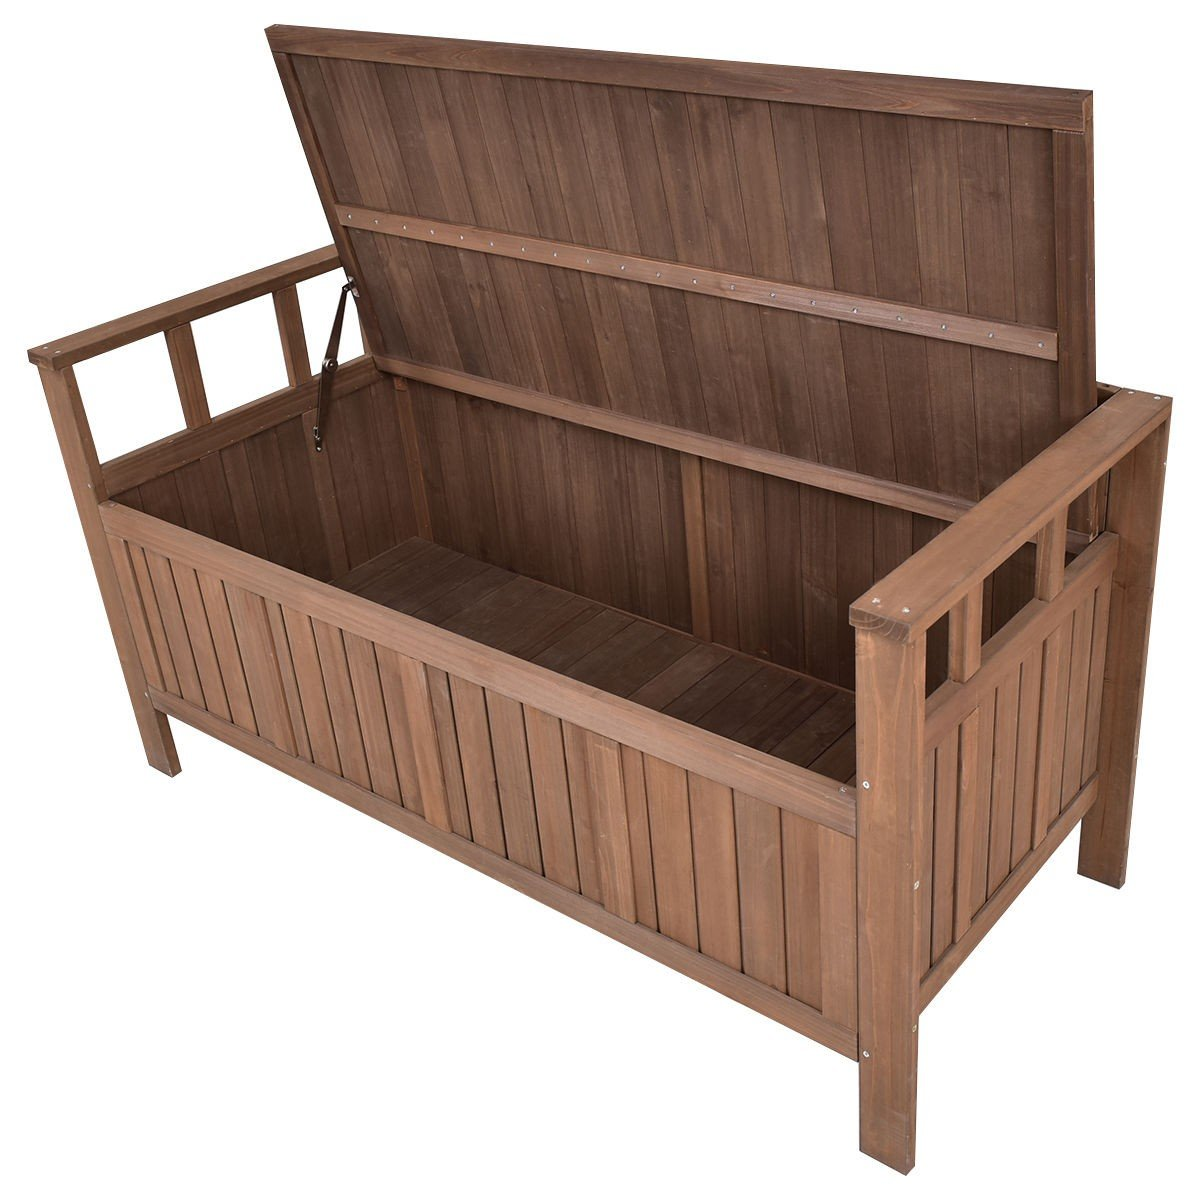 Tremendous 70 Gallon 2 In 1 Outdoor Garden Bench Storage Deck Box Evergreenethics Interior Chair Design Evergreenethicsorg